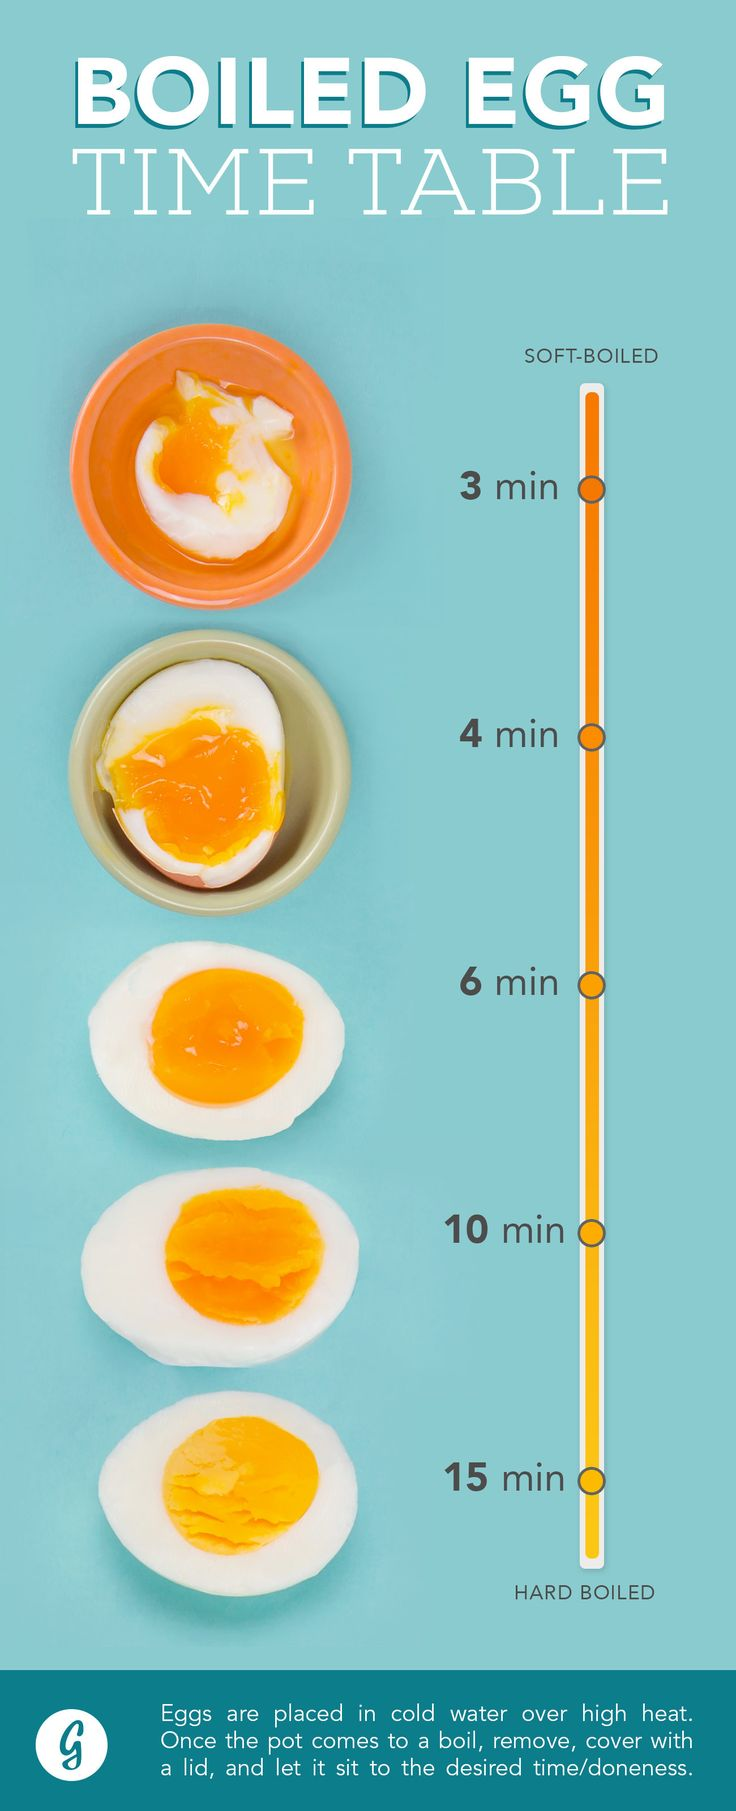 How To Make The Perfect Boiled Egg Every Time